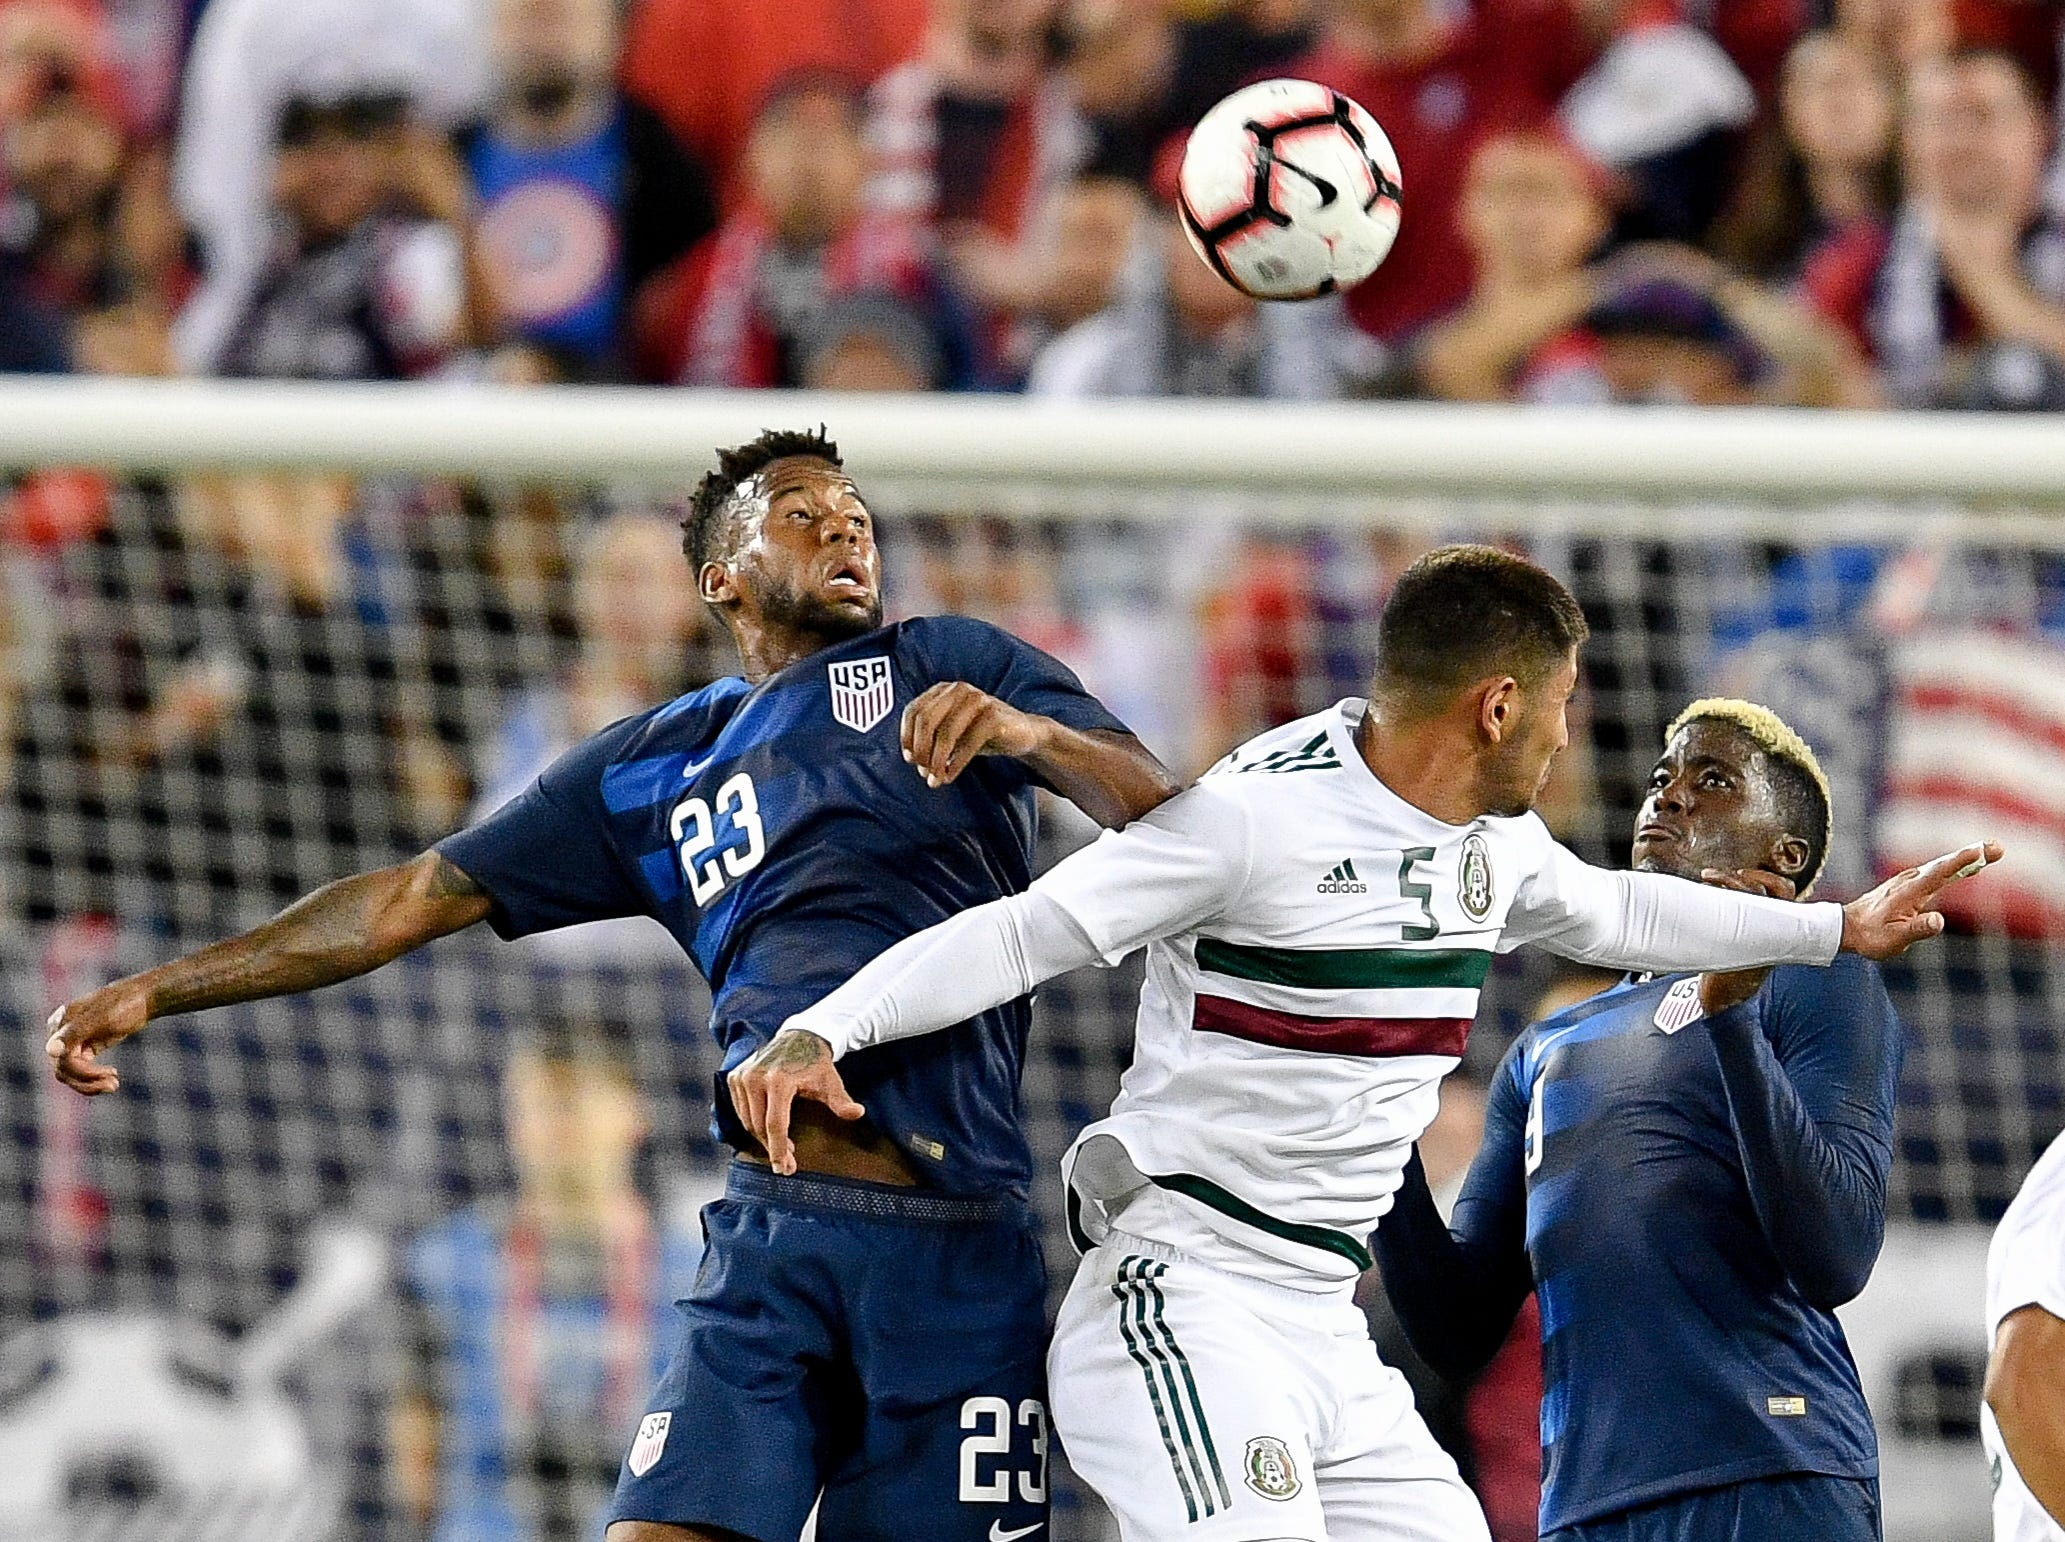 USA midfielder Kellyn Acosta (23) leaps for the ball with Mexico midfielder Victor Guzman (5) during the second half at Nissan Stadium in Nashville, Tenn., Tuesday, Sept. 11, 2018.